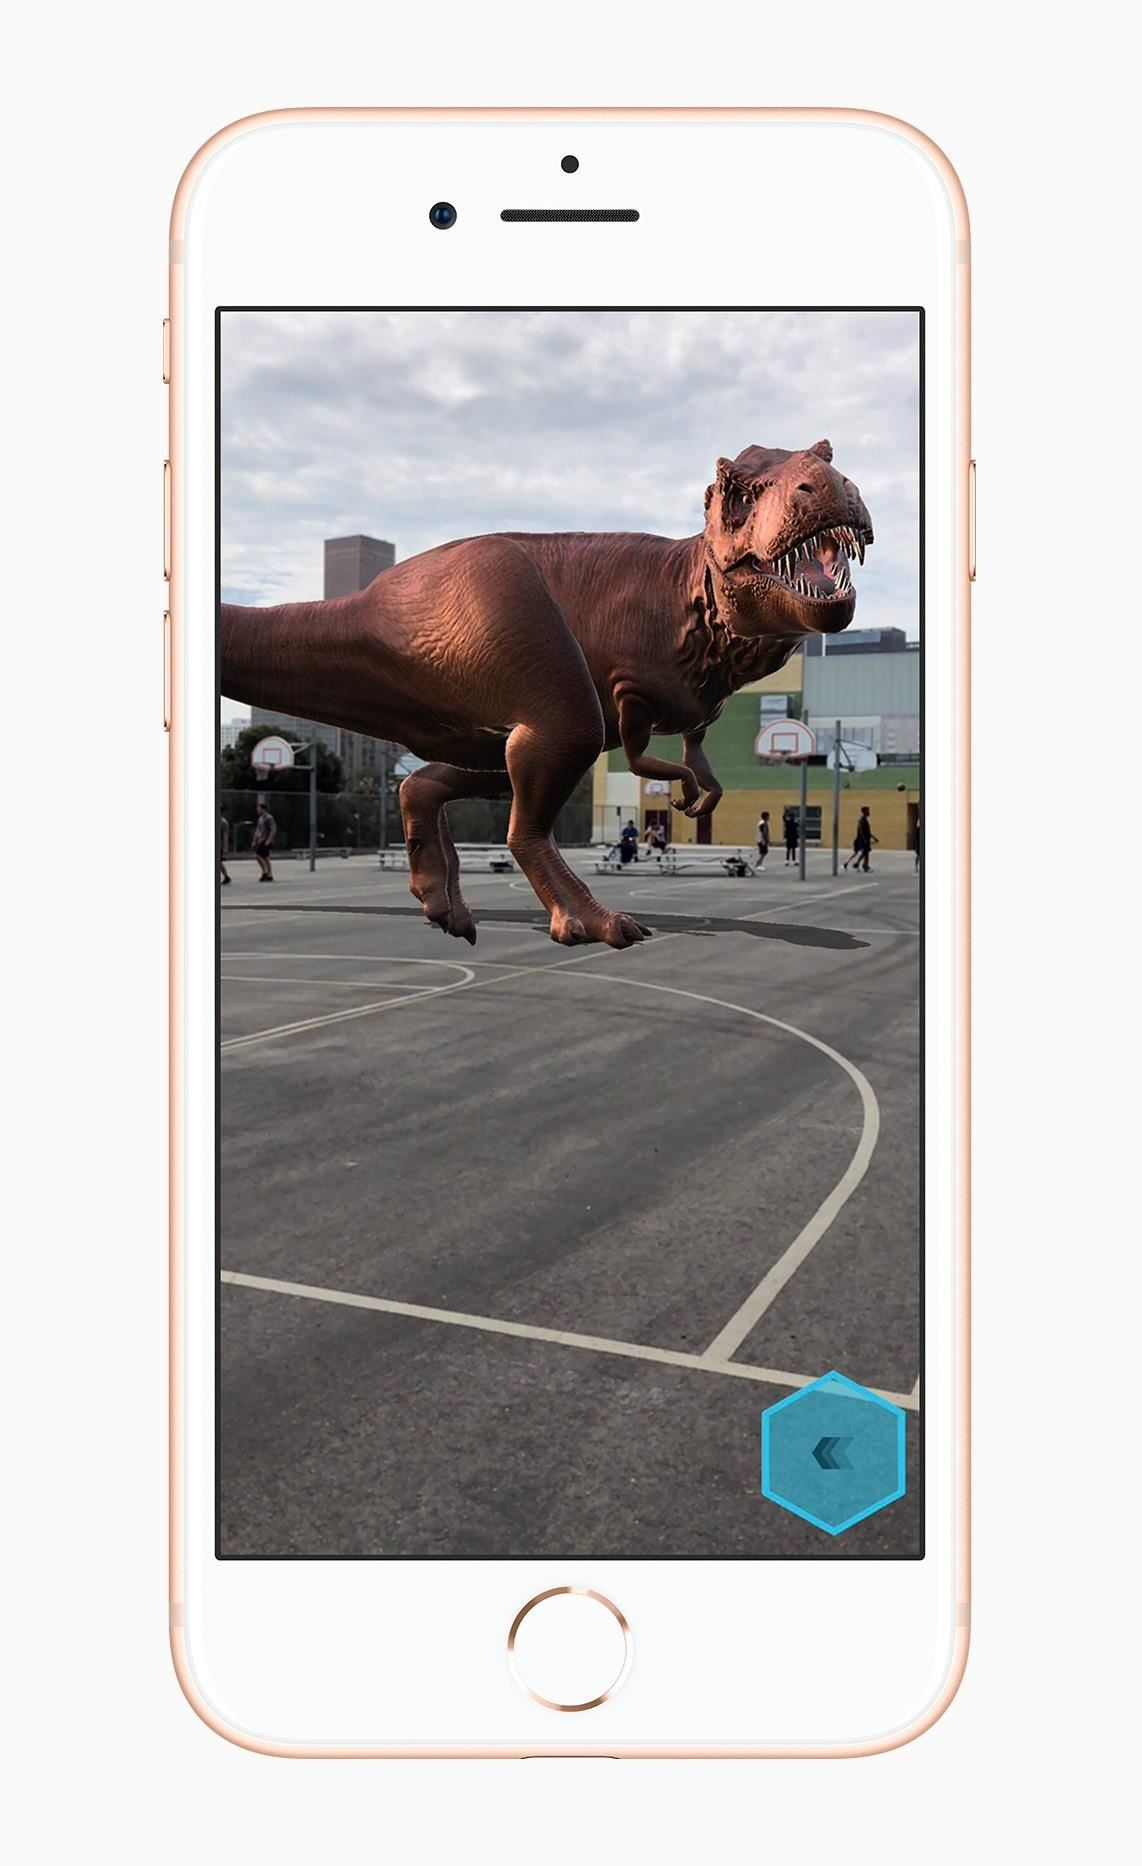 Apple AR: Apple's ARKit Launch Partners Include MLB, Directive Games & More